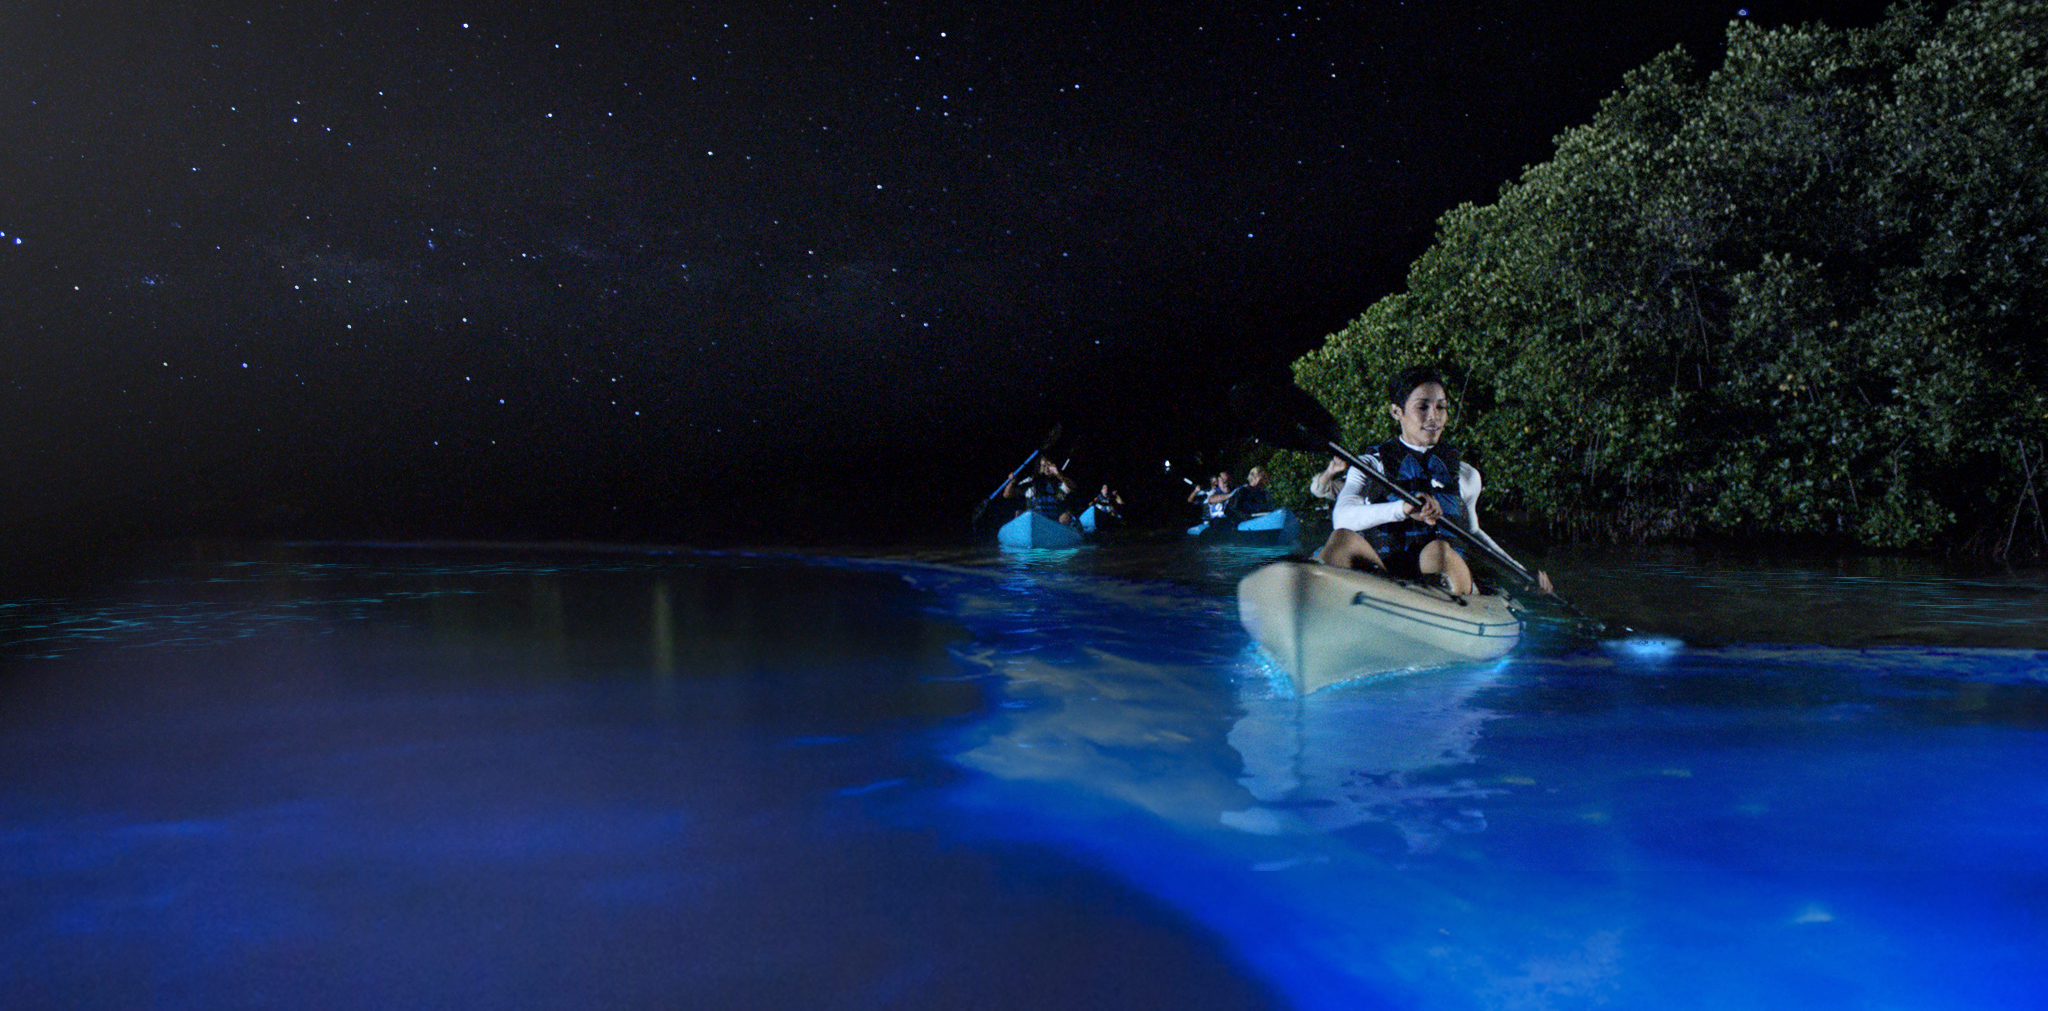 In Mosquito Bay, visitors can participat in various activities. The most famous is kayaking in the bioluminescent waters.